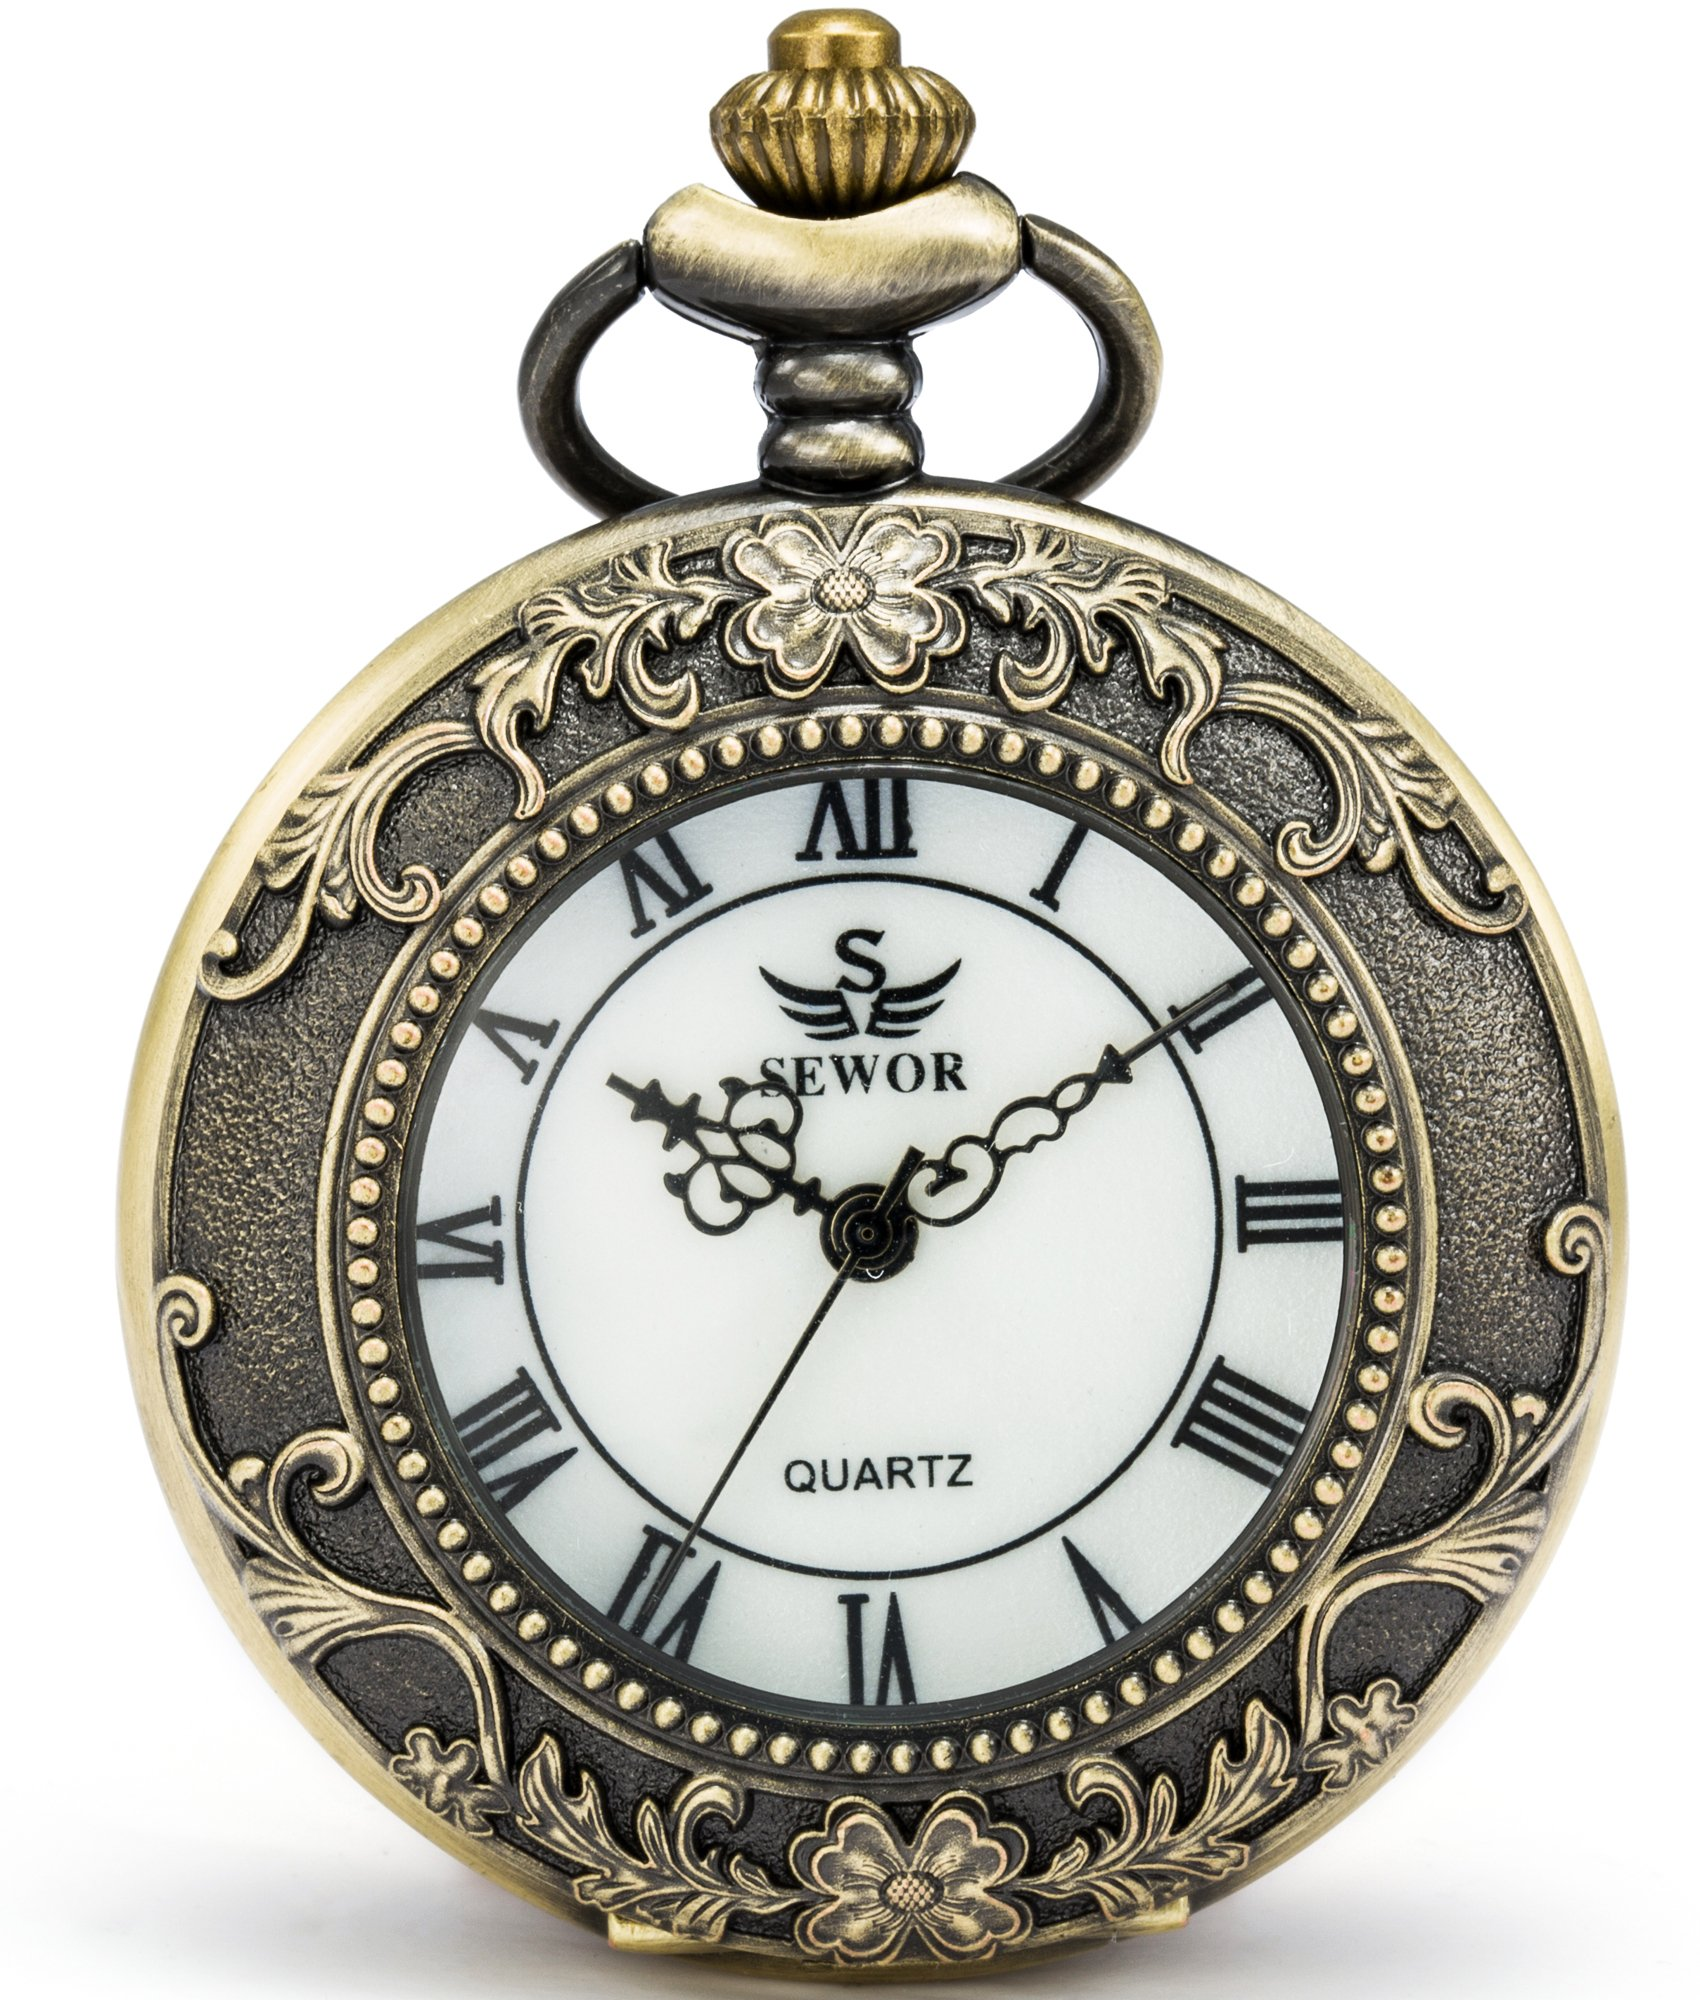 SEWOR Quartz Pocket Watch Shell Dial Magnifier Case with Two Type Chain (Leather+Metal) (Bronze) by SEWOR